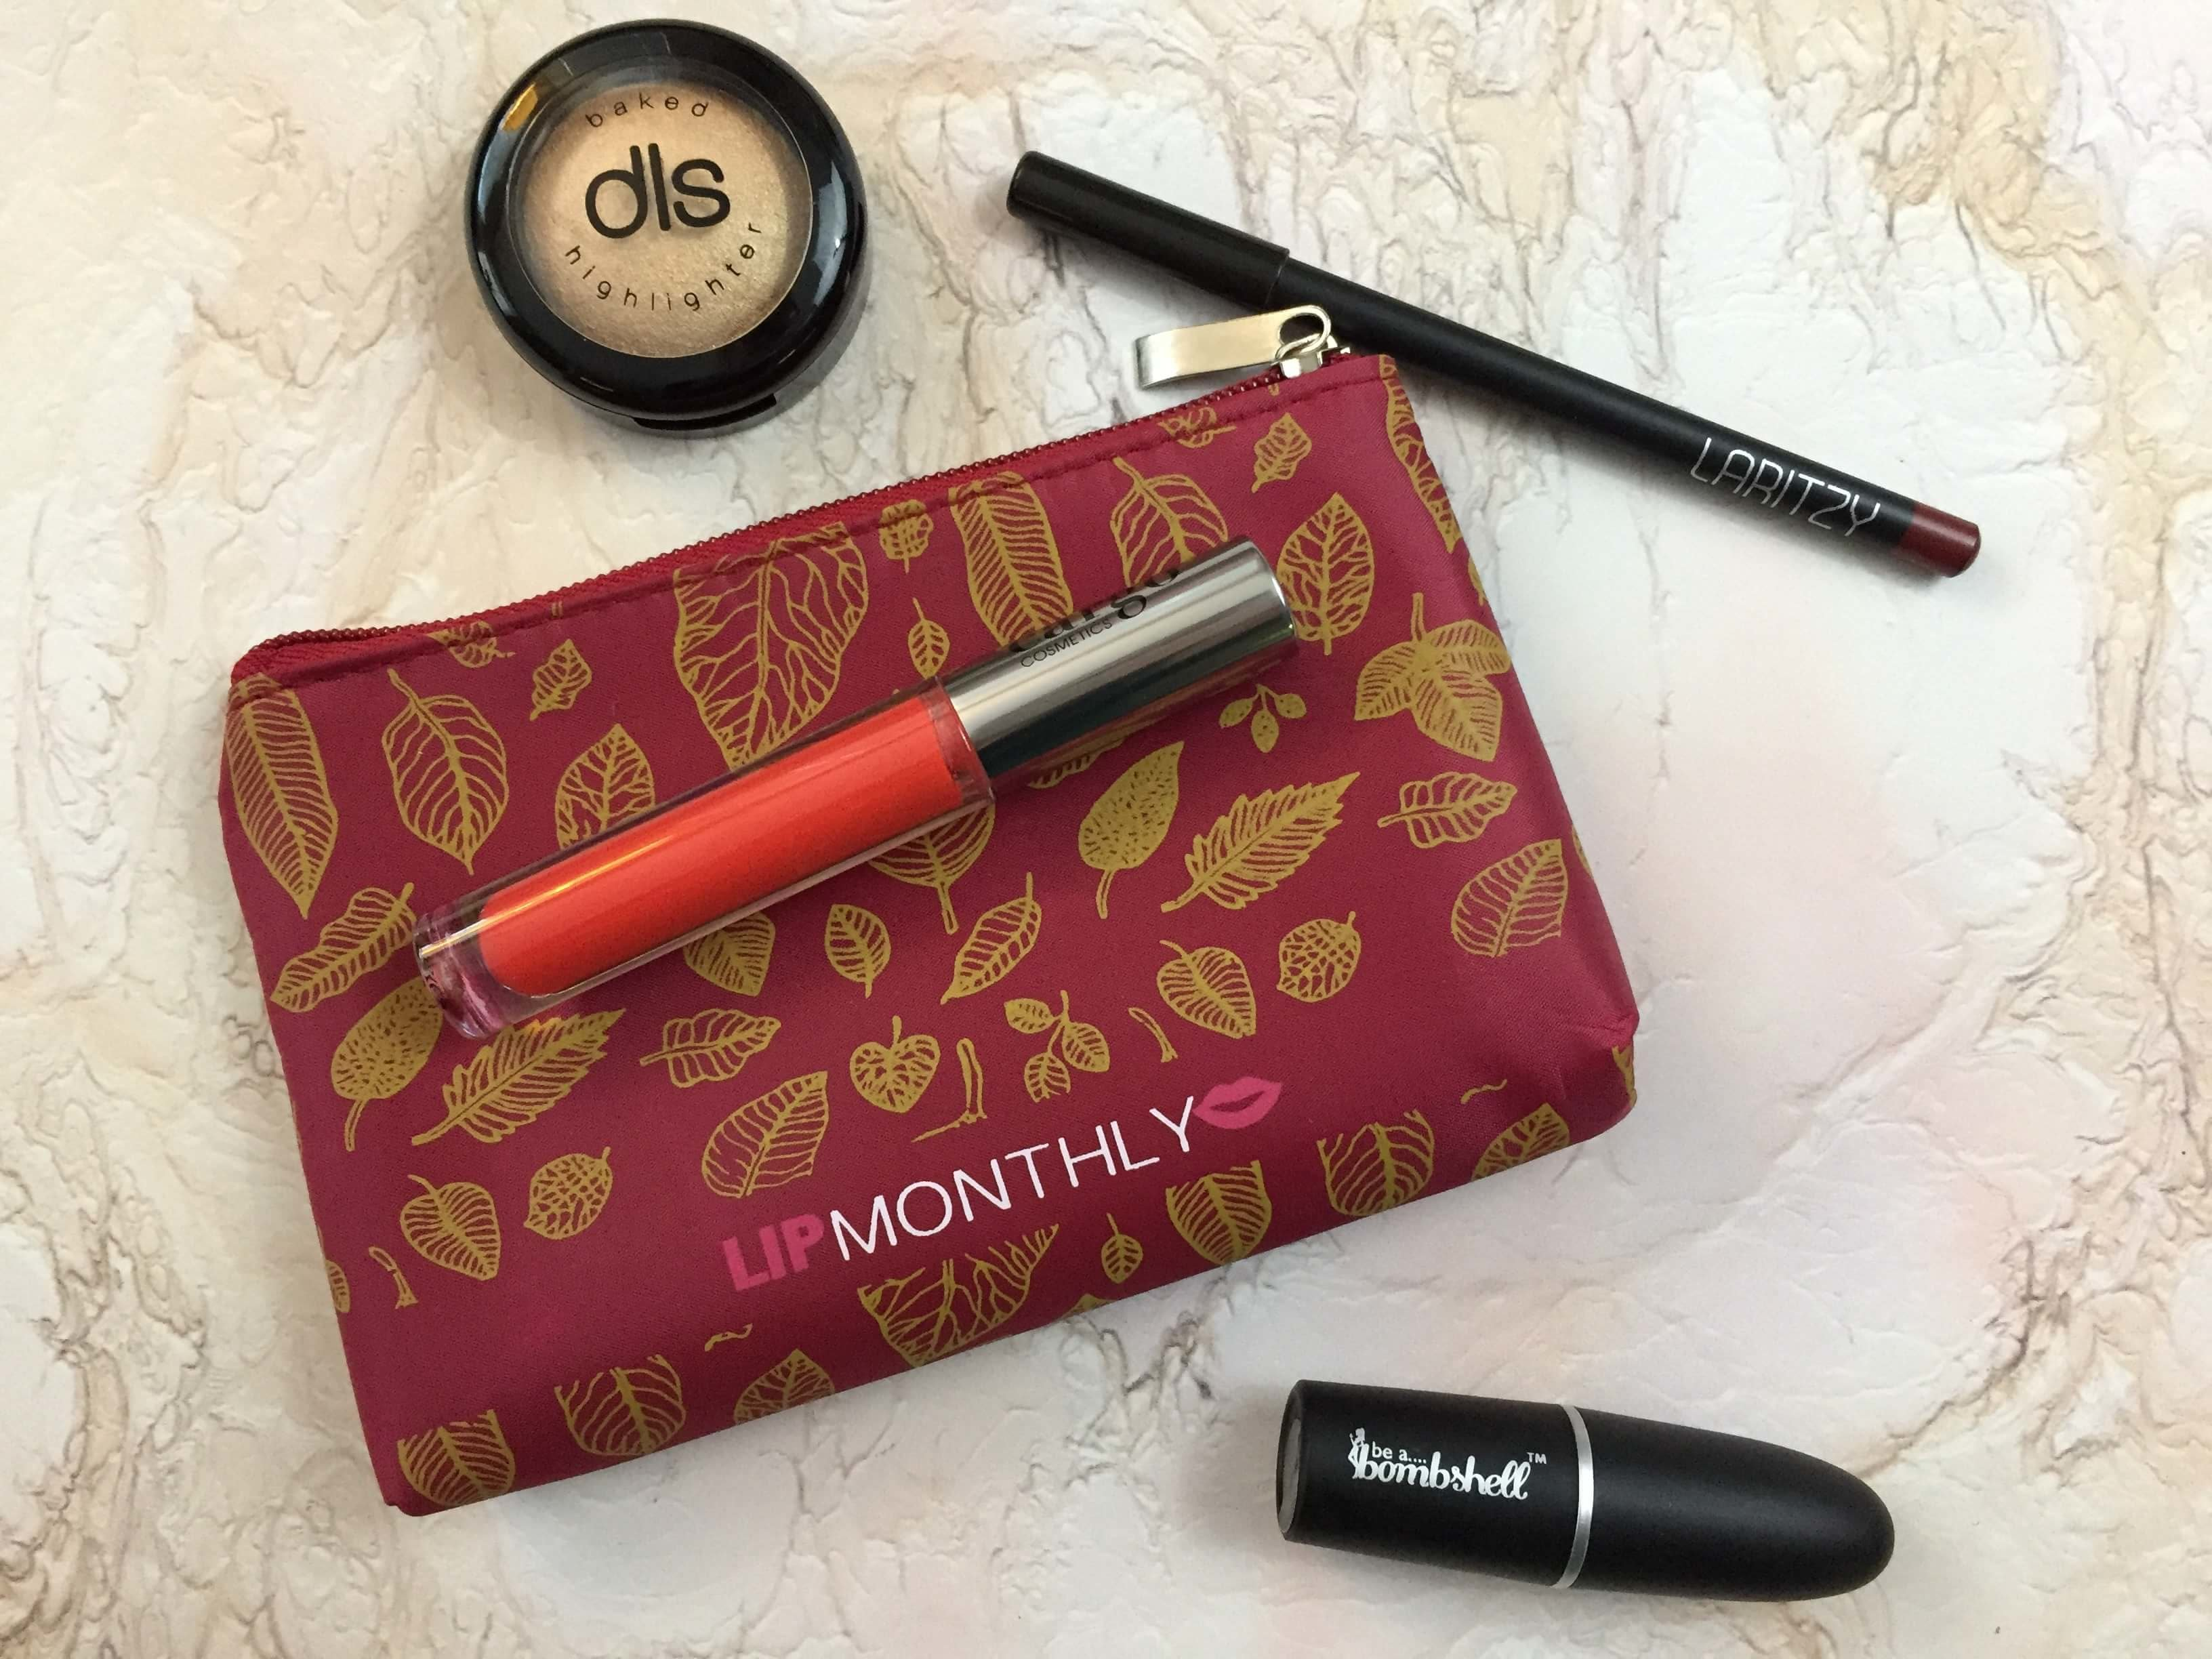 Lip Monthly October 2016 Subscription Box Review & Coupon